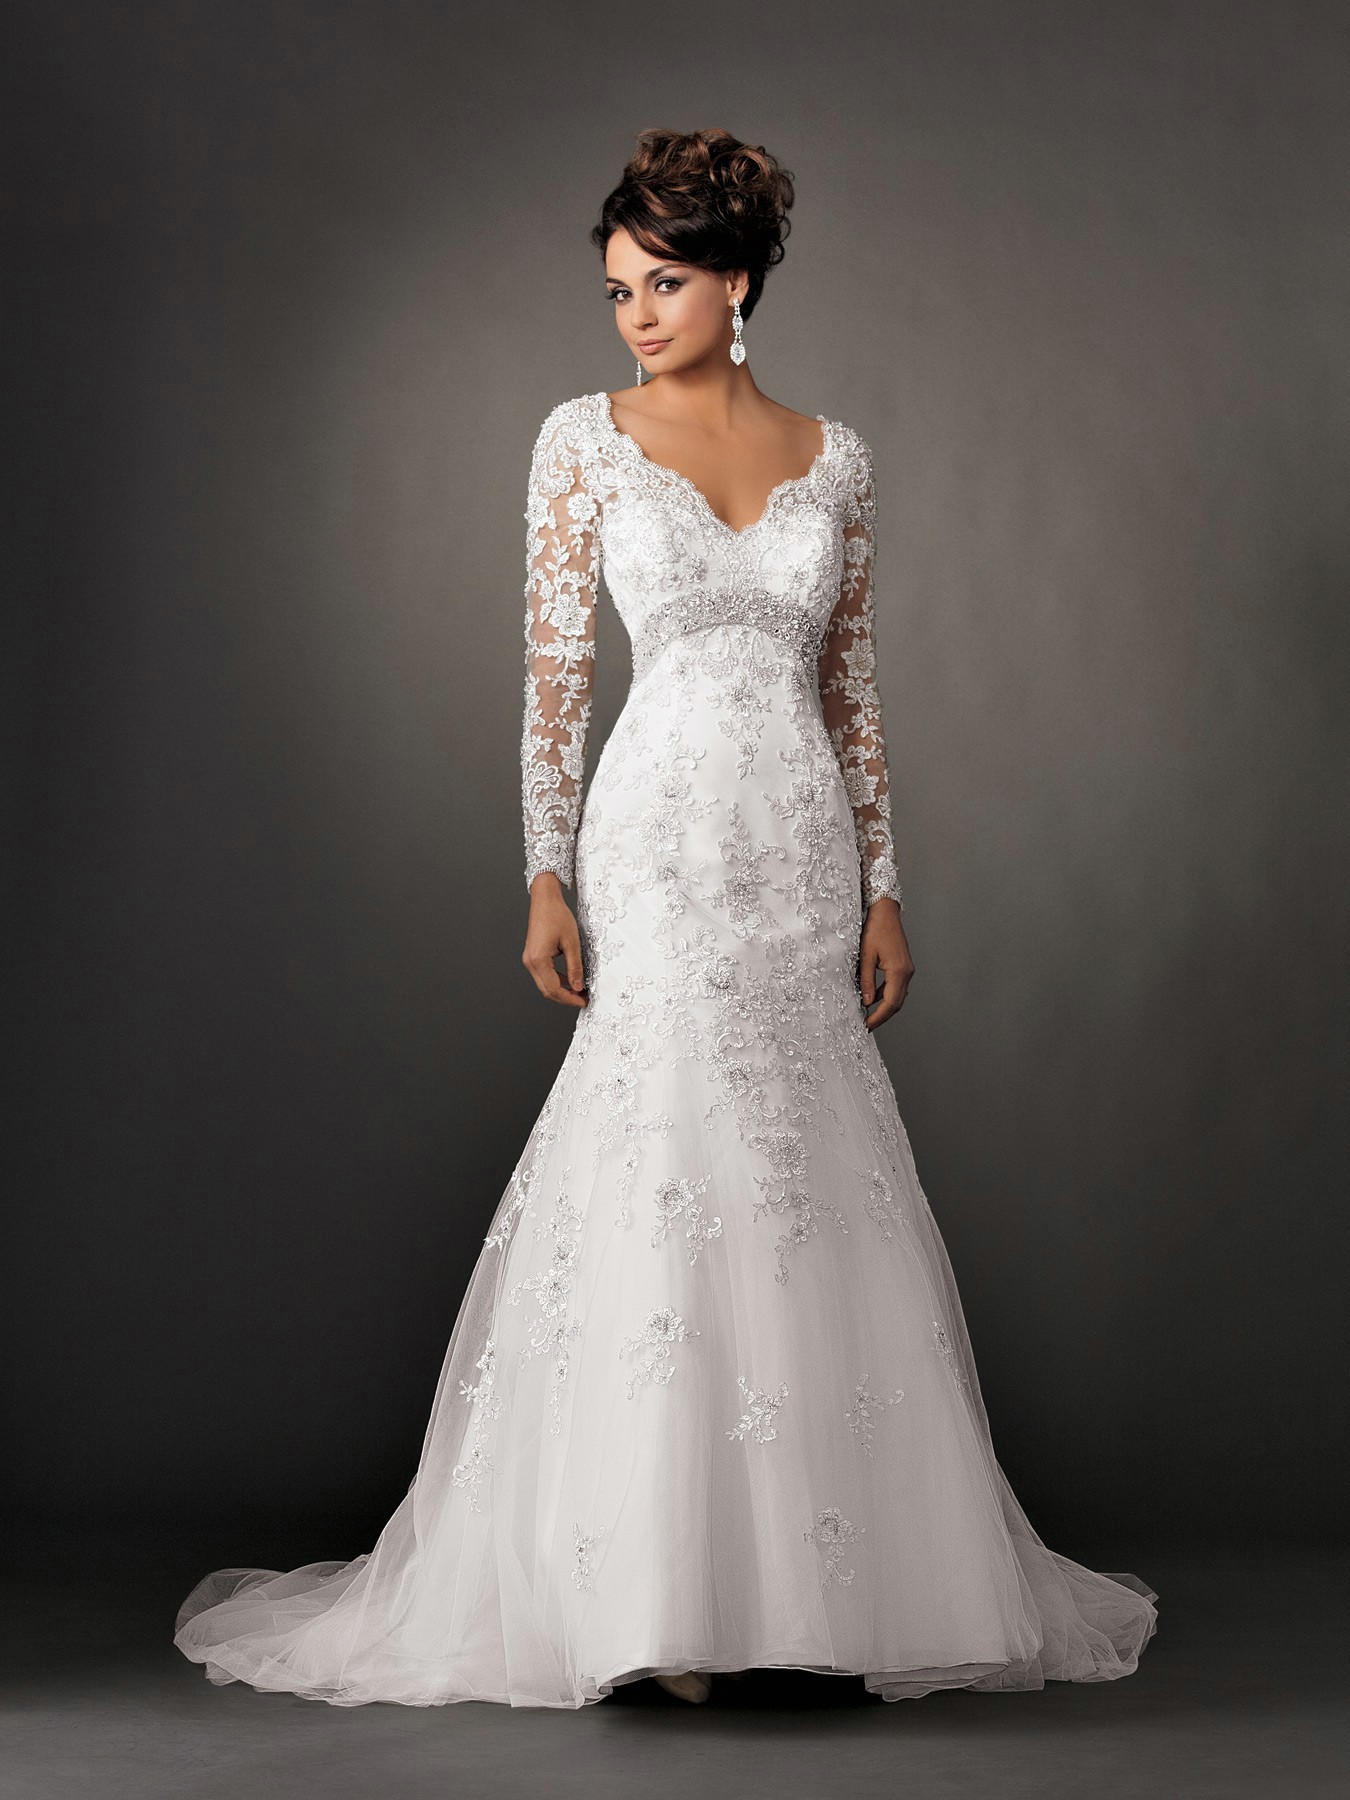 Romantic wedding dresses with lace sleeves sang maestro for Lace dresses for weddings